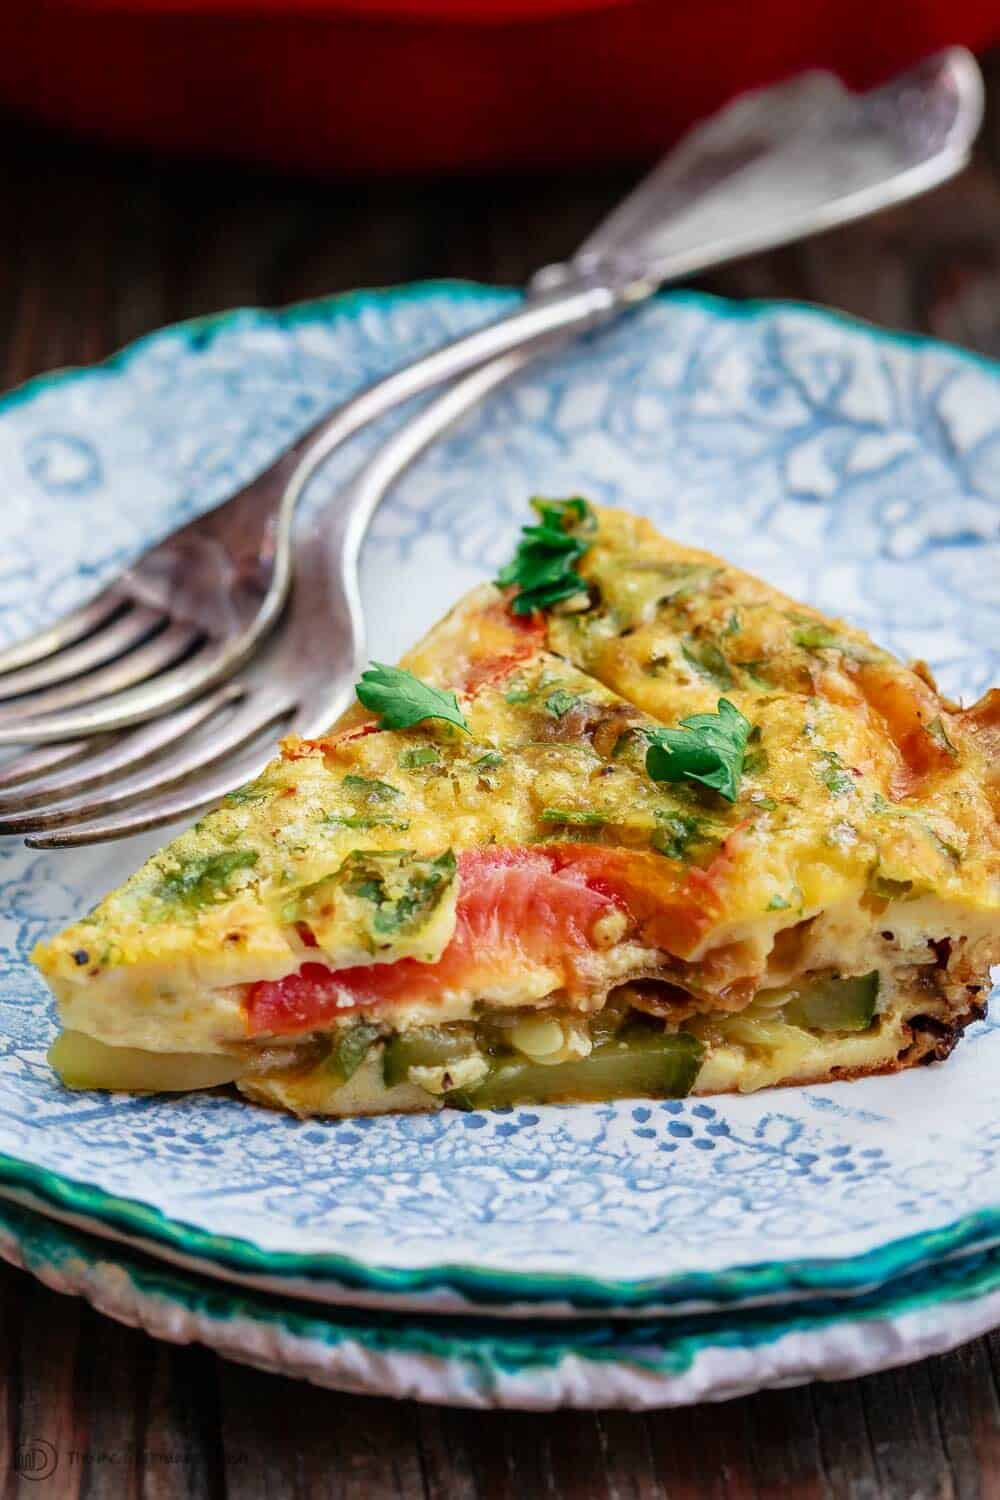 Crustless Zucchini Quiche Recipe | The Mediterranean Dish. Simple crustless zucchini quiche recipe with fresh herbs, tomatoes, and shallots. Perfect for breakfast, lunch, or a light dinner. See our suggestions for what to serve along. #zucchini #quiche #crustlessquiche #zucchinirecipe #breakfast #brunch #holidaybrunch #vegetarianrecipes #savorypie #eggs #mediterraneandiet #mediterraneanrecipes